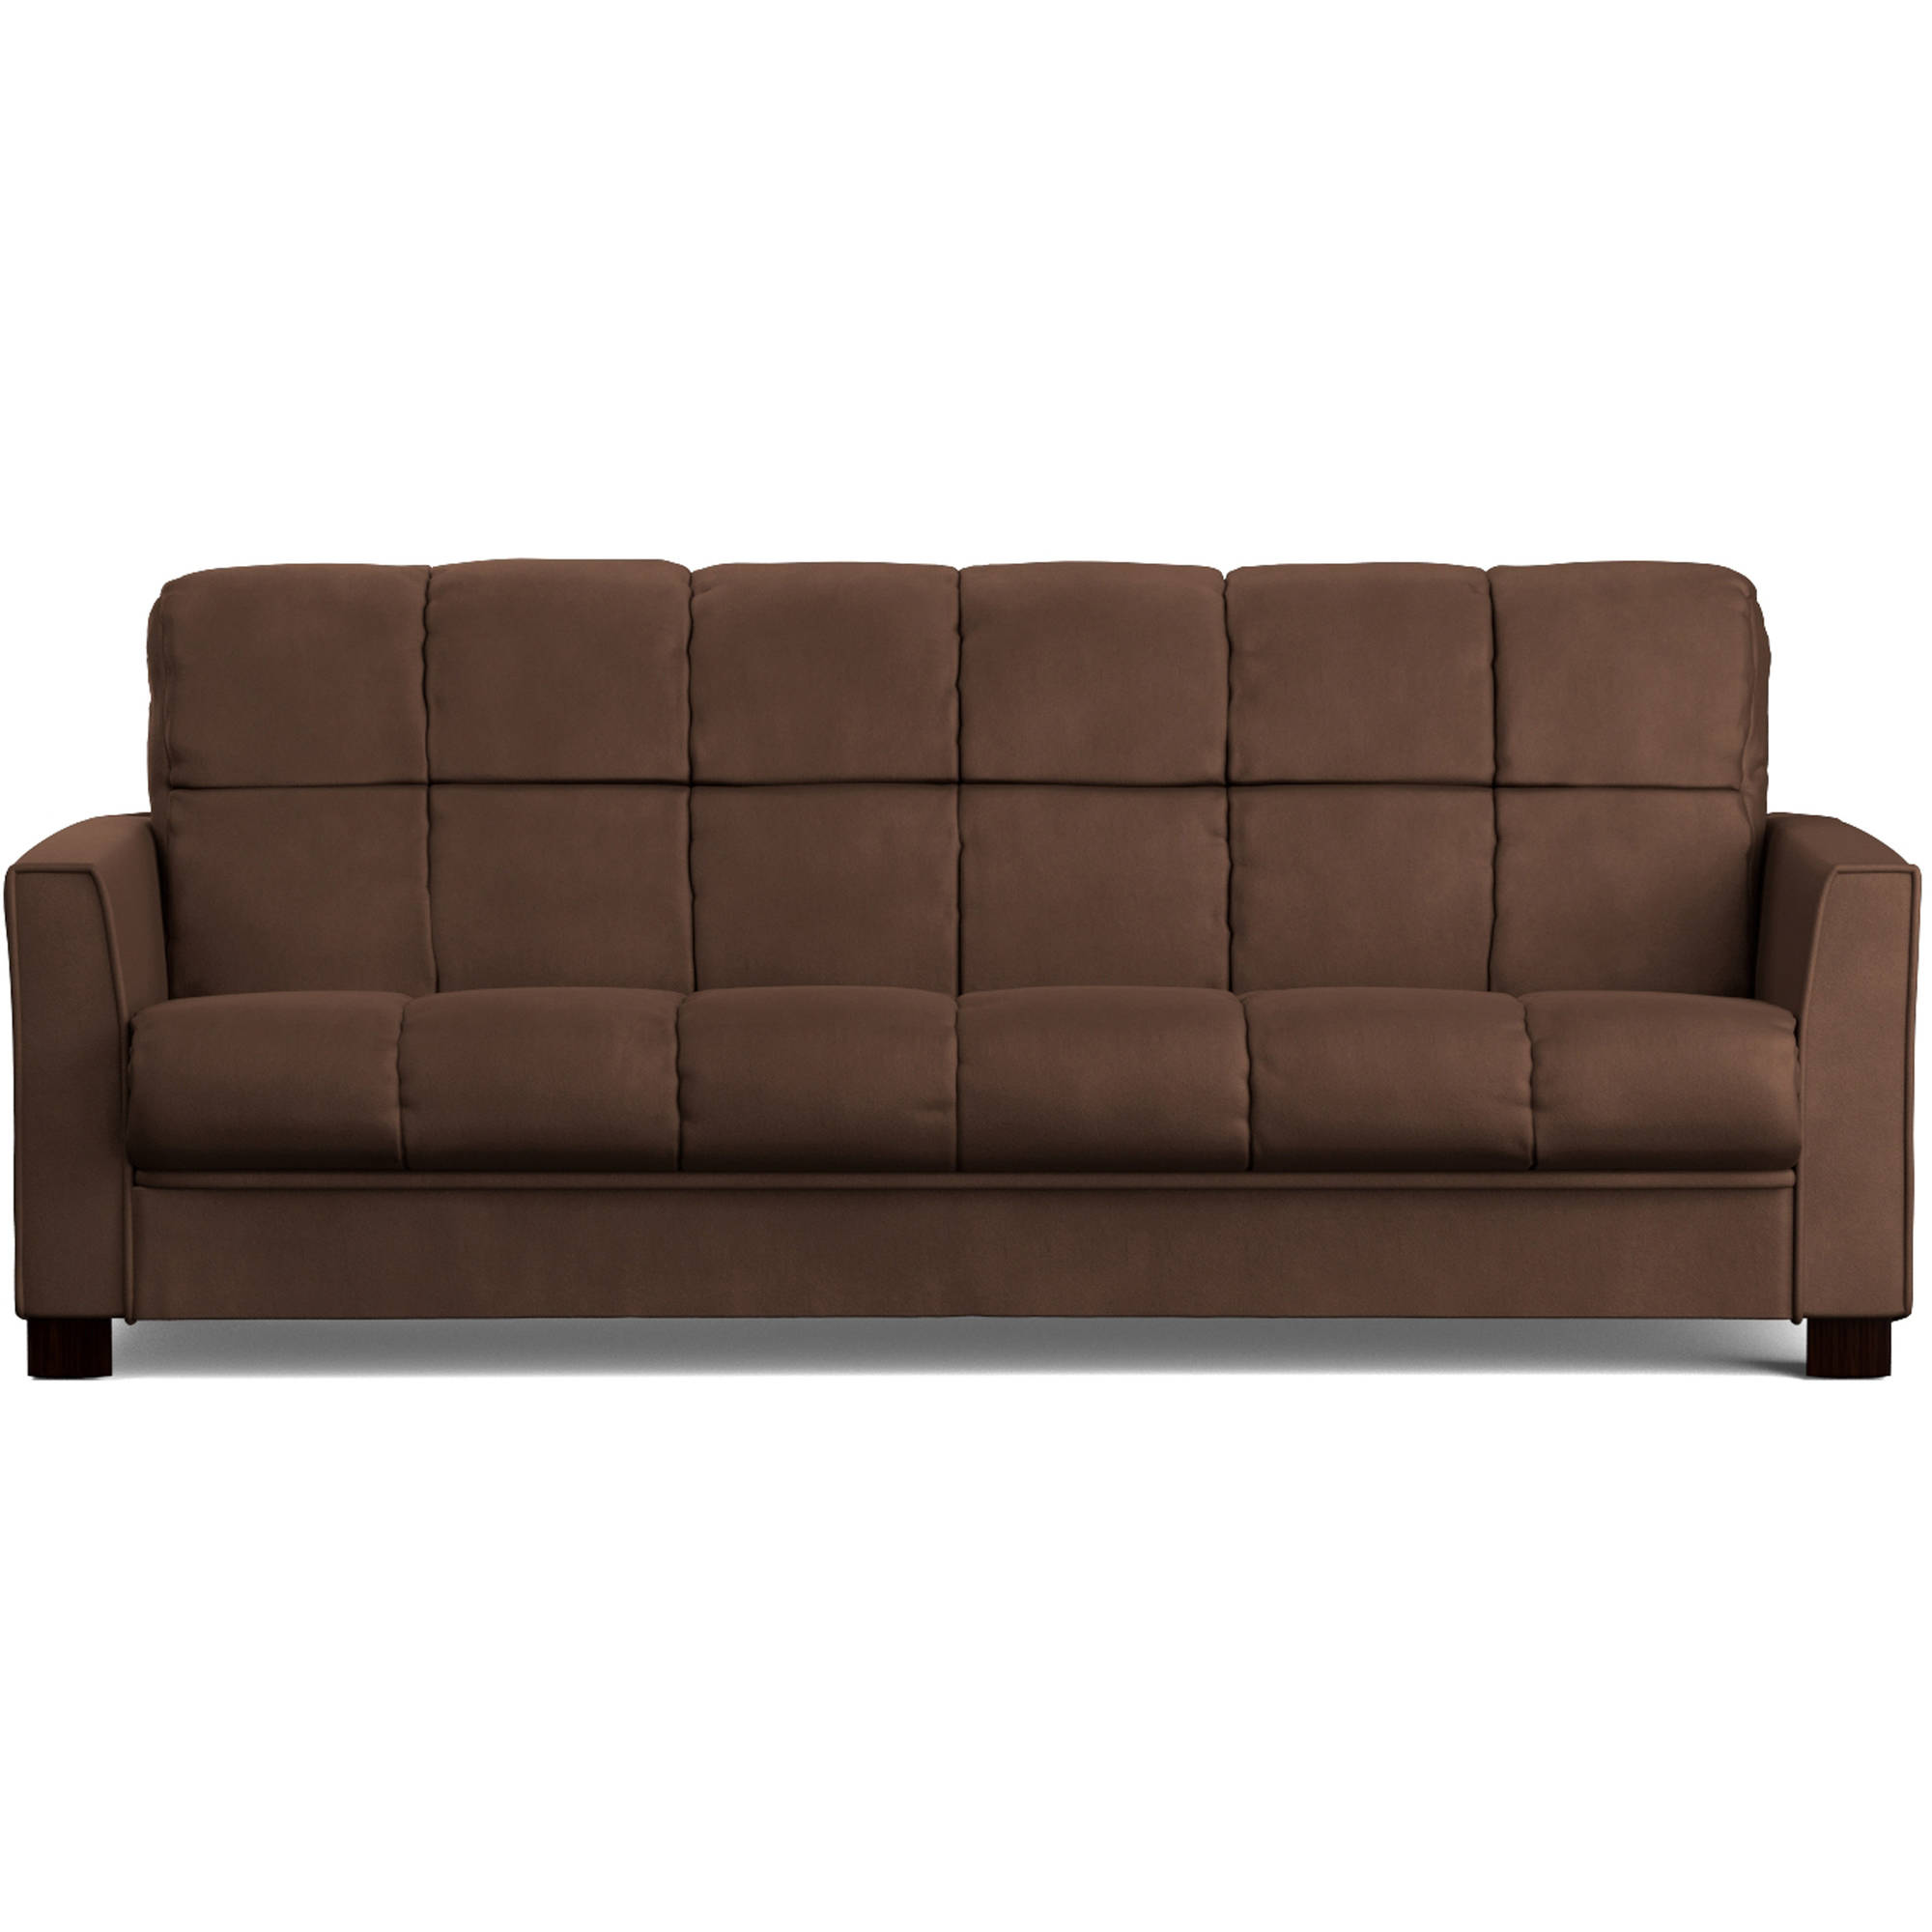 Mainstays Baja Futon Sofa Sleeper Bed Multiple Colors Com Rh